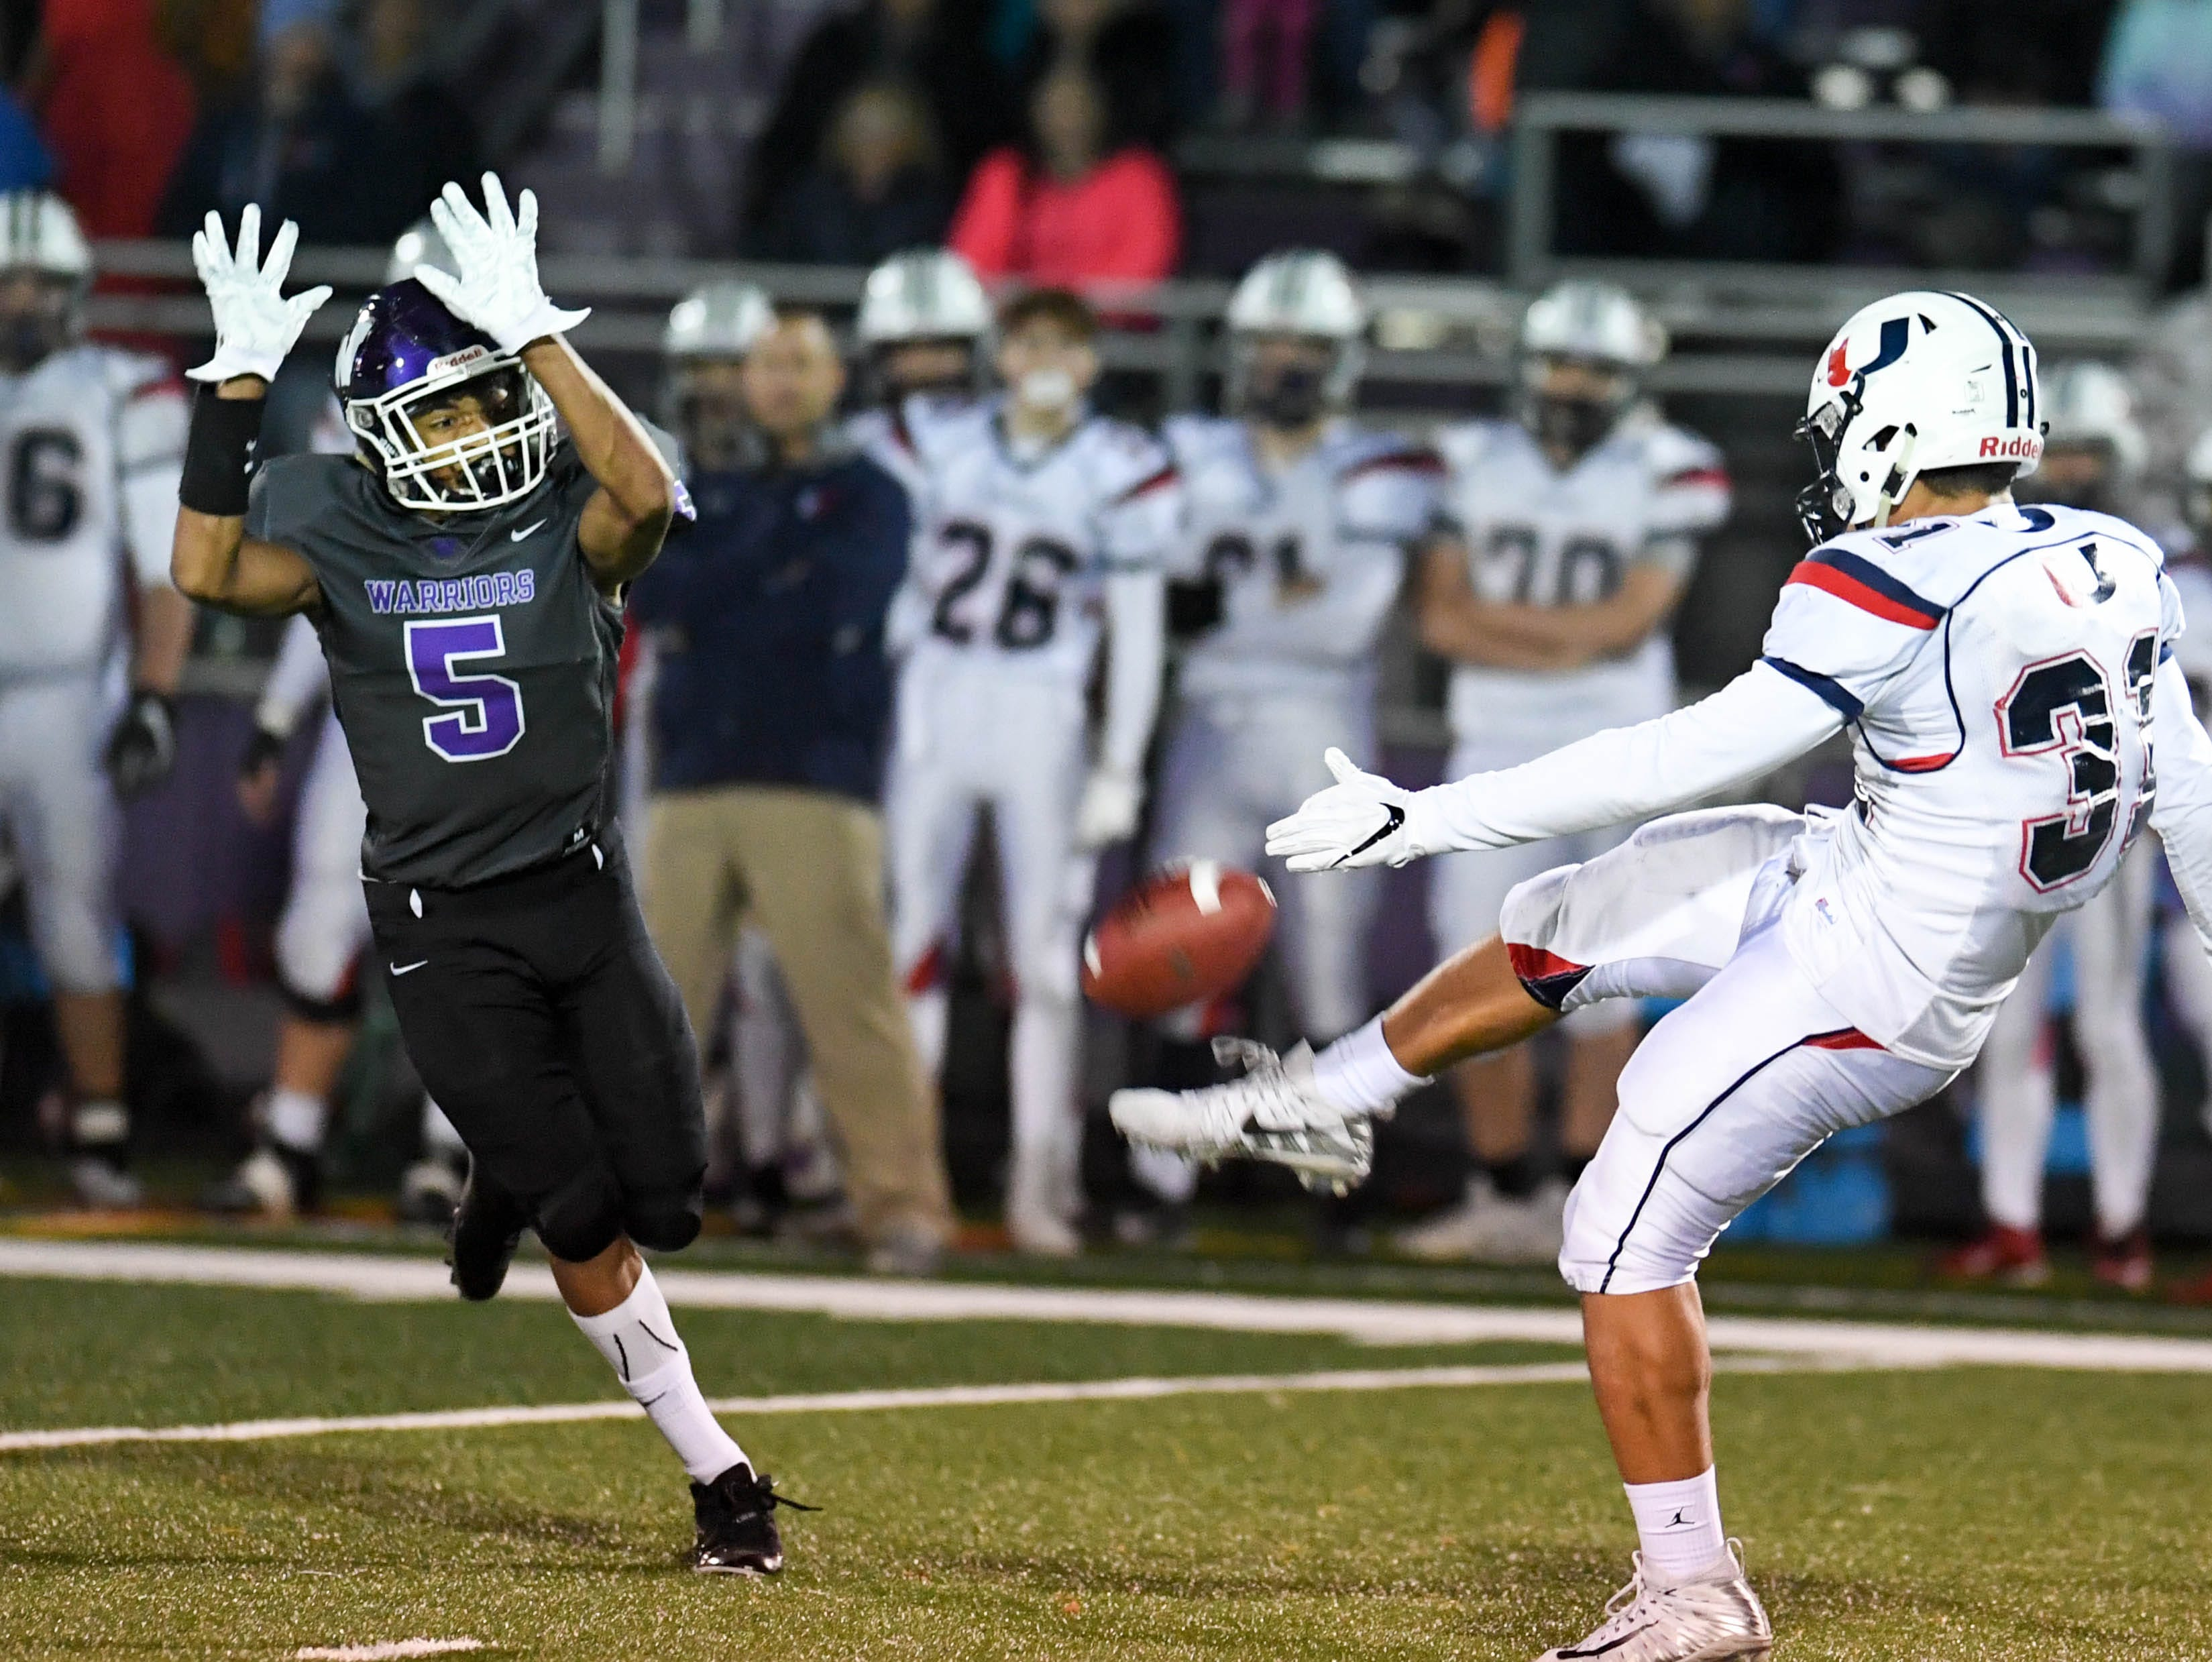 Urbandale's Jacob Brechtel (33) tries to get the punt away under preasure from Waukee's Aaron Smith (5) on Friday, Oct. 26, 2018 during a playoff game between the Waukee Warriors and the Urbandale J-Hawks at Waukee High School.